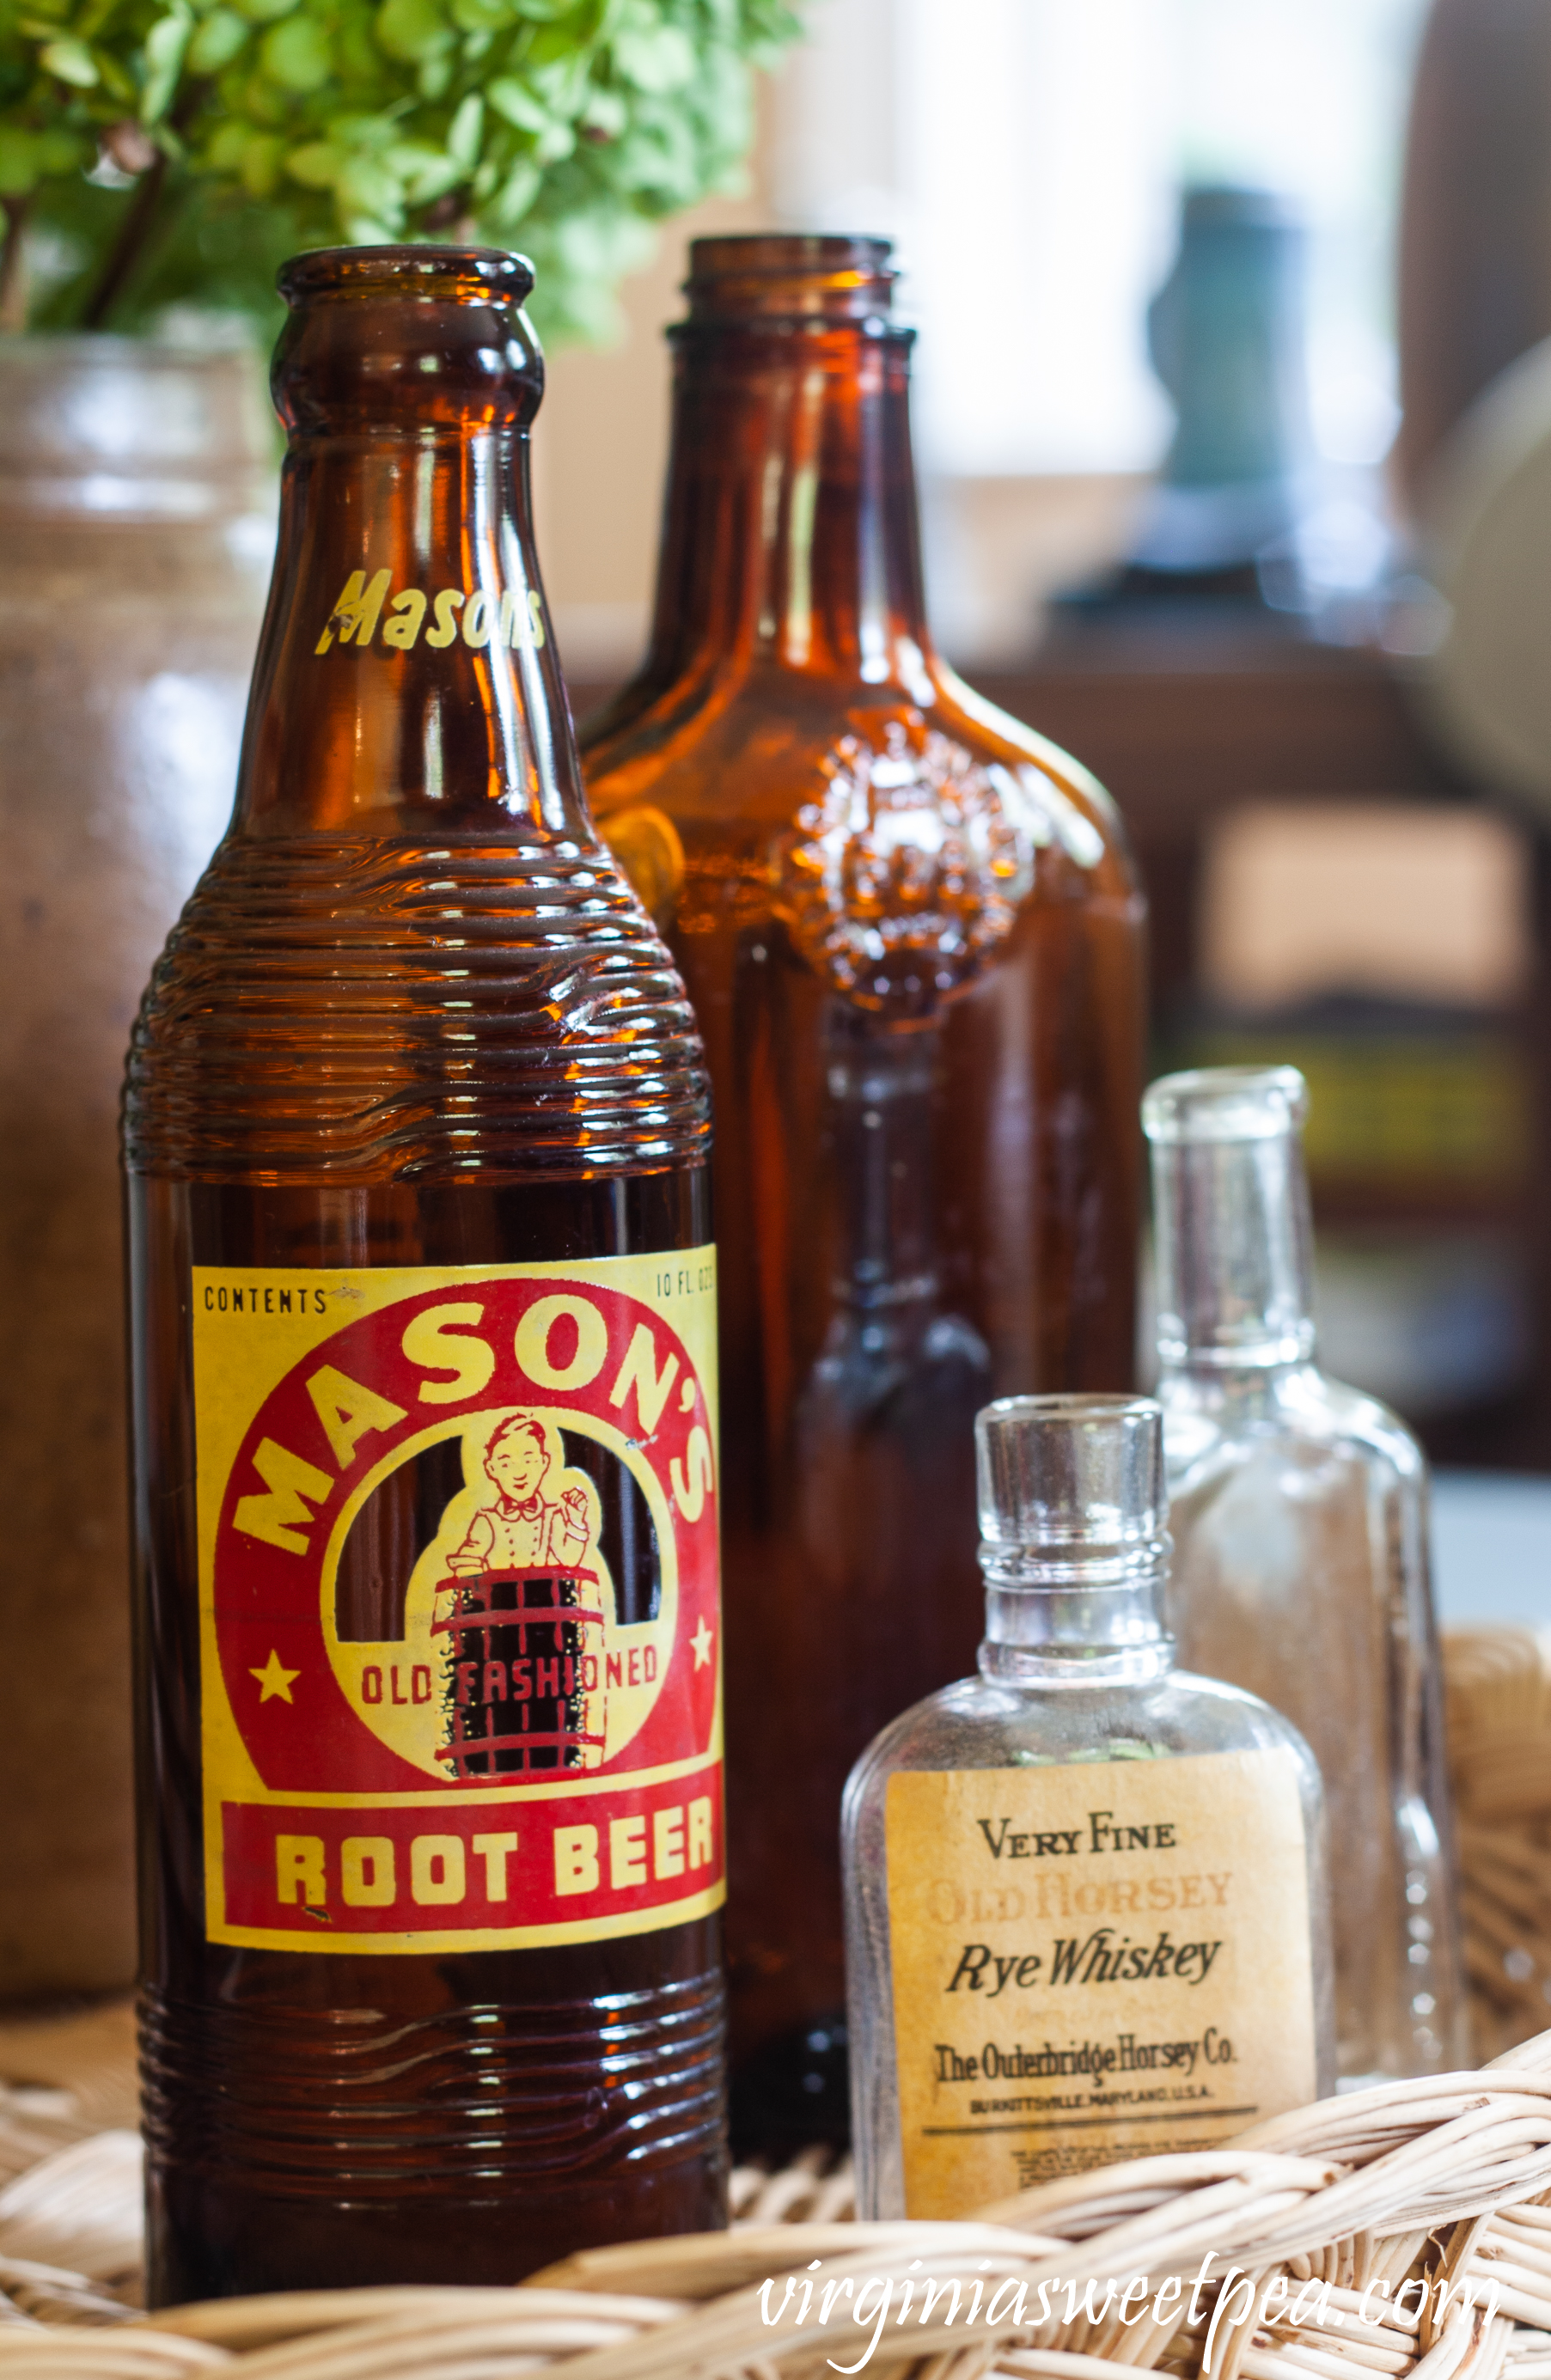 Mason's Root Beer bottle, Very Fine Old Horsey Rye Whiskey bottle, a brown liquor bottle and a small clear glass bottle.